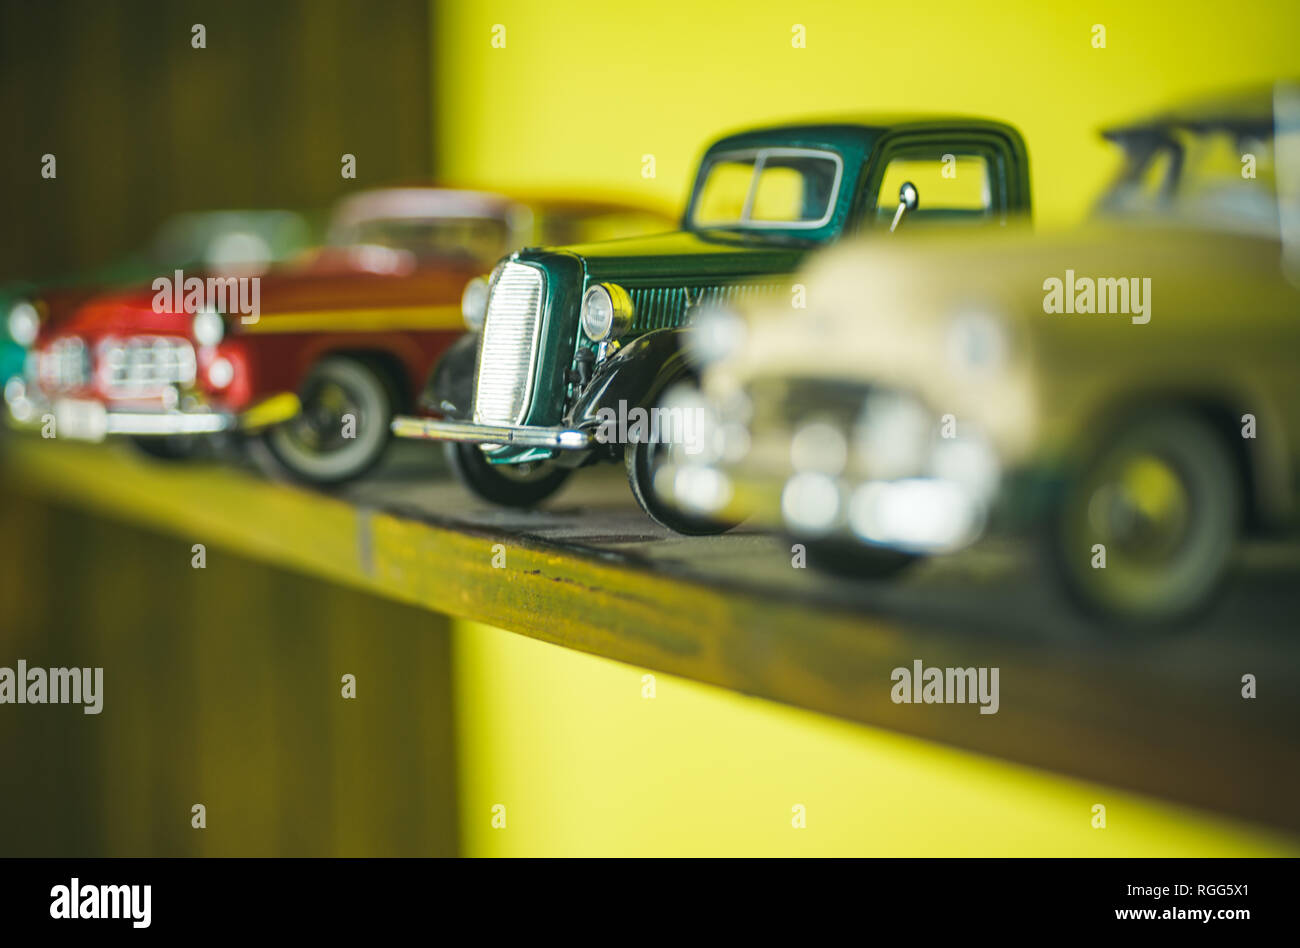 They look like real cars. Classic model vehicles or toy vehicles. Miniature collection of automobiles. Retro car models on shelf. Retro styled cars - Stock Image